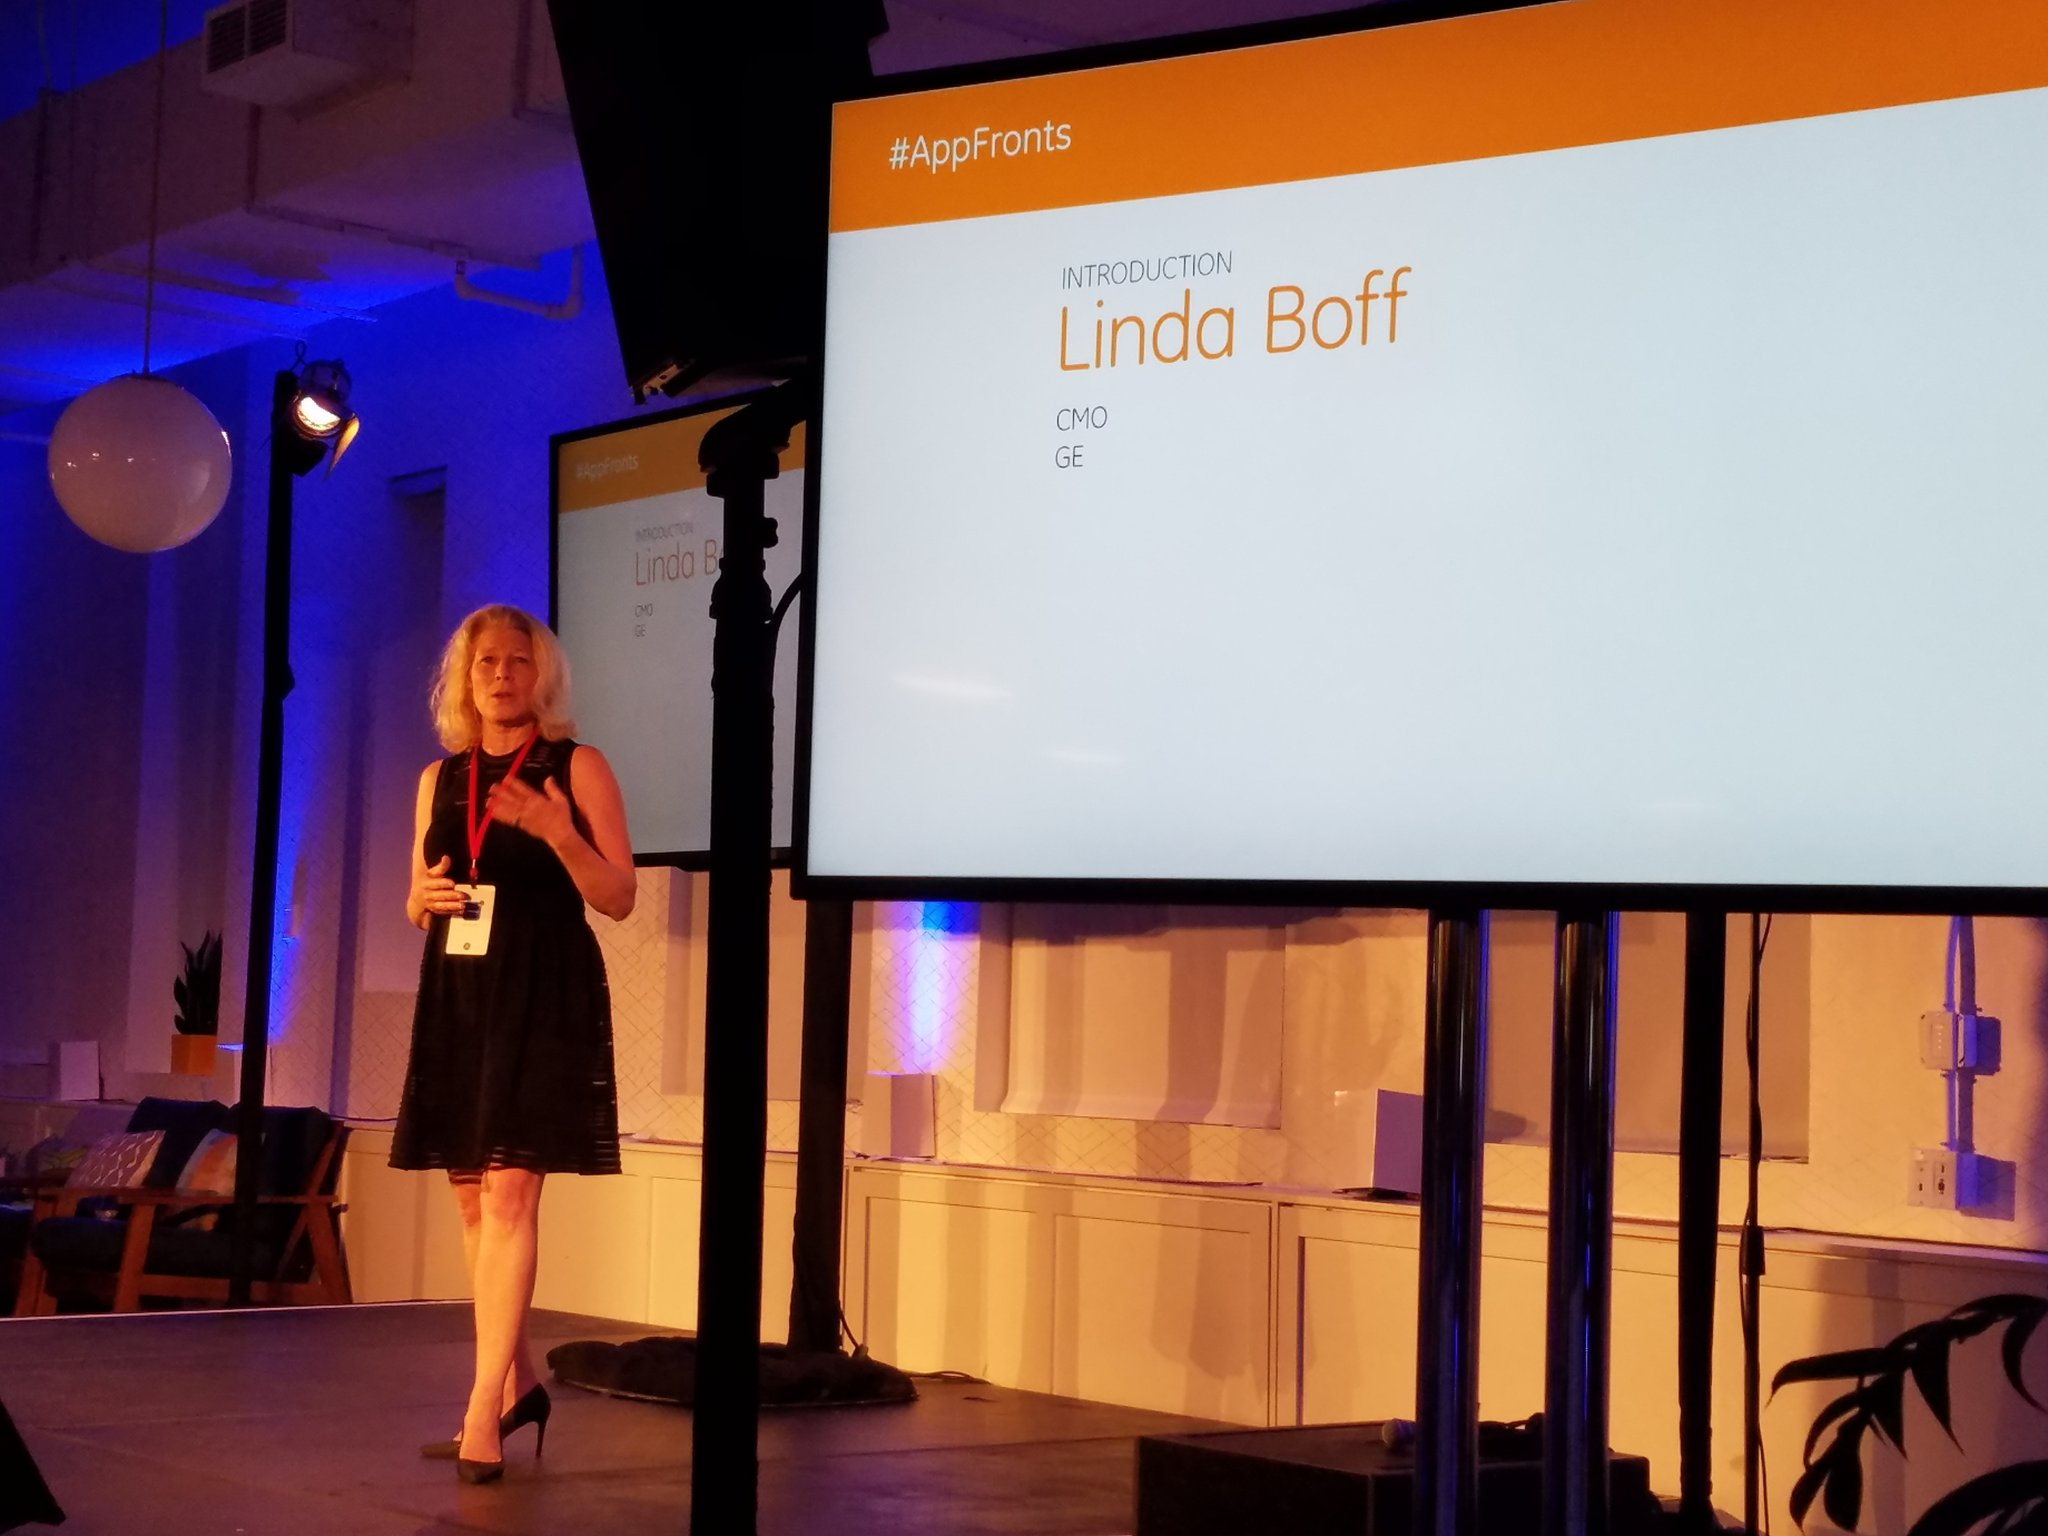 'We're innovation hunters.' @lindaboff  @generalelectric #Appfronts. On the hunt for new apps! https://t.co/qqJCmCEEX8